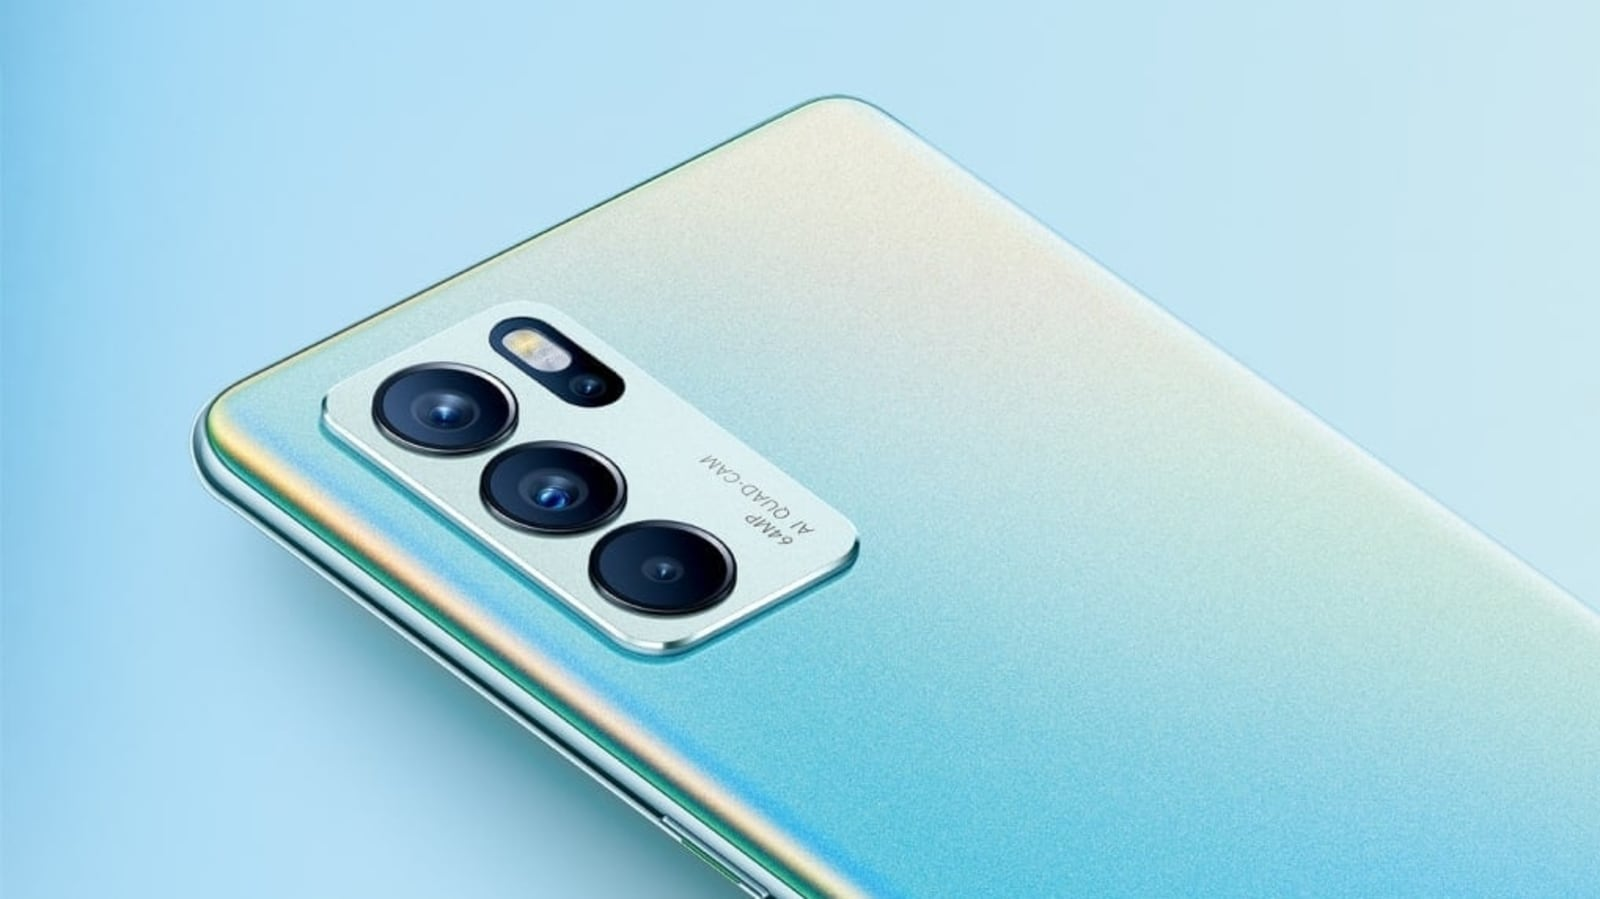 Oppo Reno 6 Pro 5G on sale from today, check price and rivals, iQOO 7 Legend, Mi 11X Pro, Samsung Galaxy S20 FE